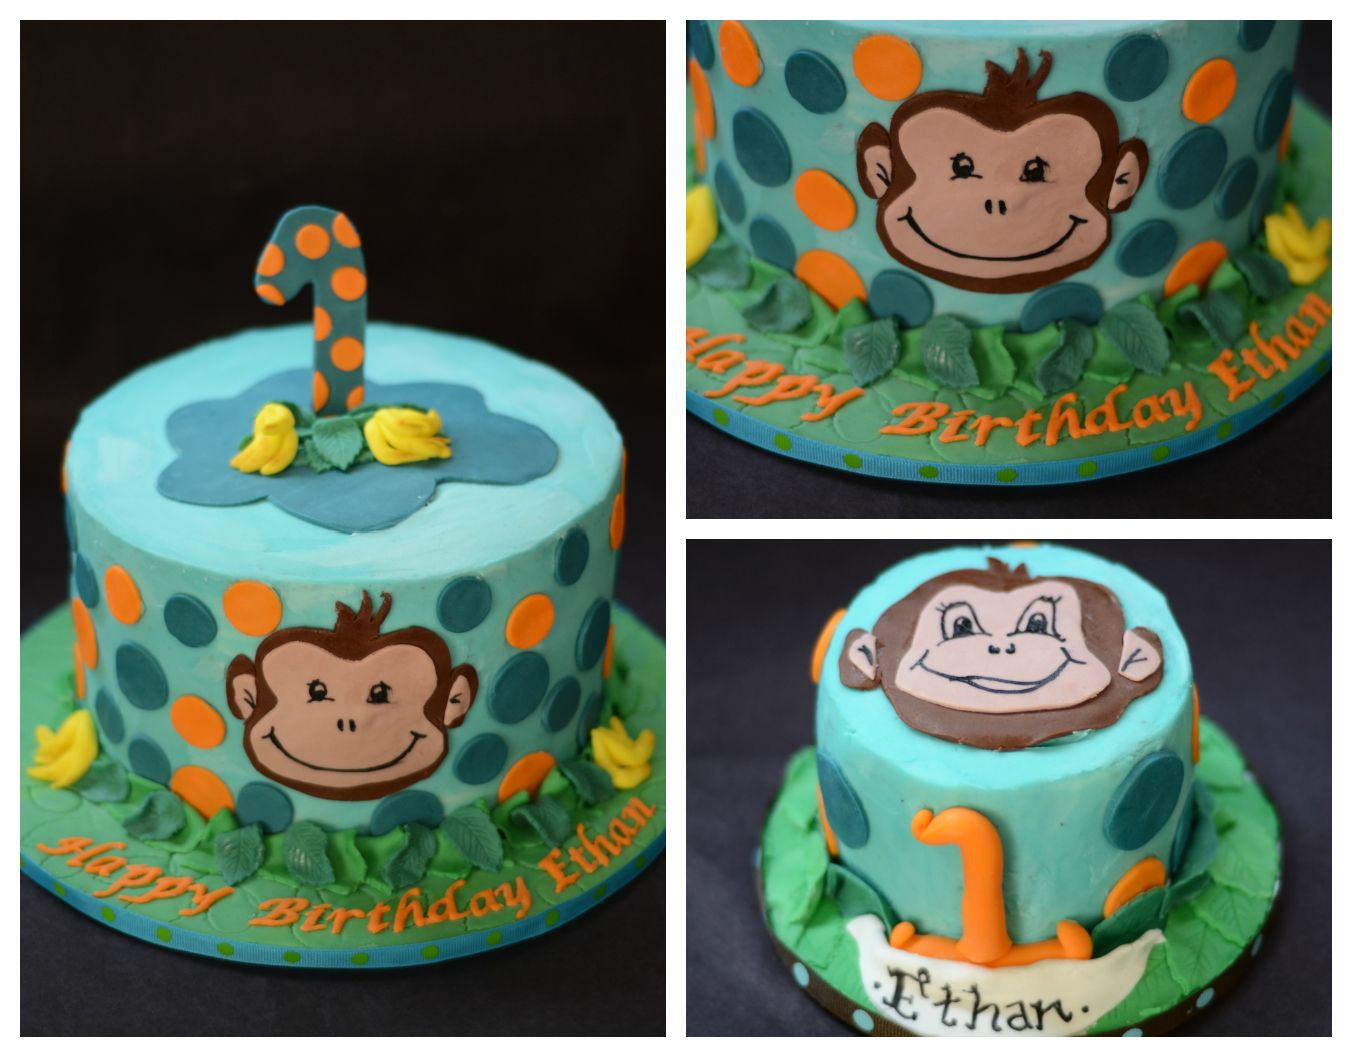 Tremendous Little Monkey First Birthday Cake And Smash Cake Buttercream Birthday Cards Printable Trancafe Filternl